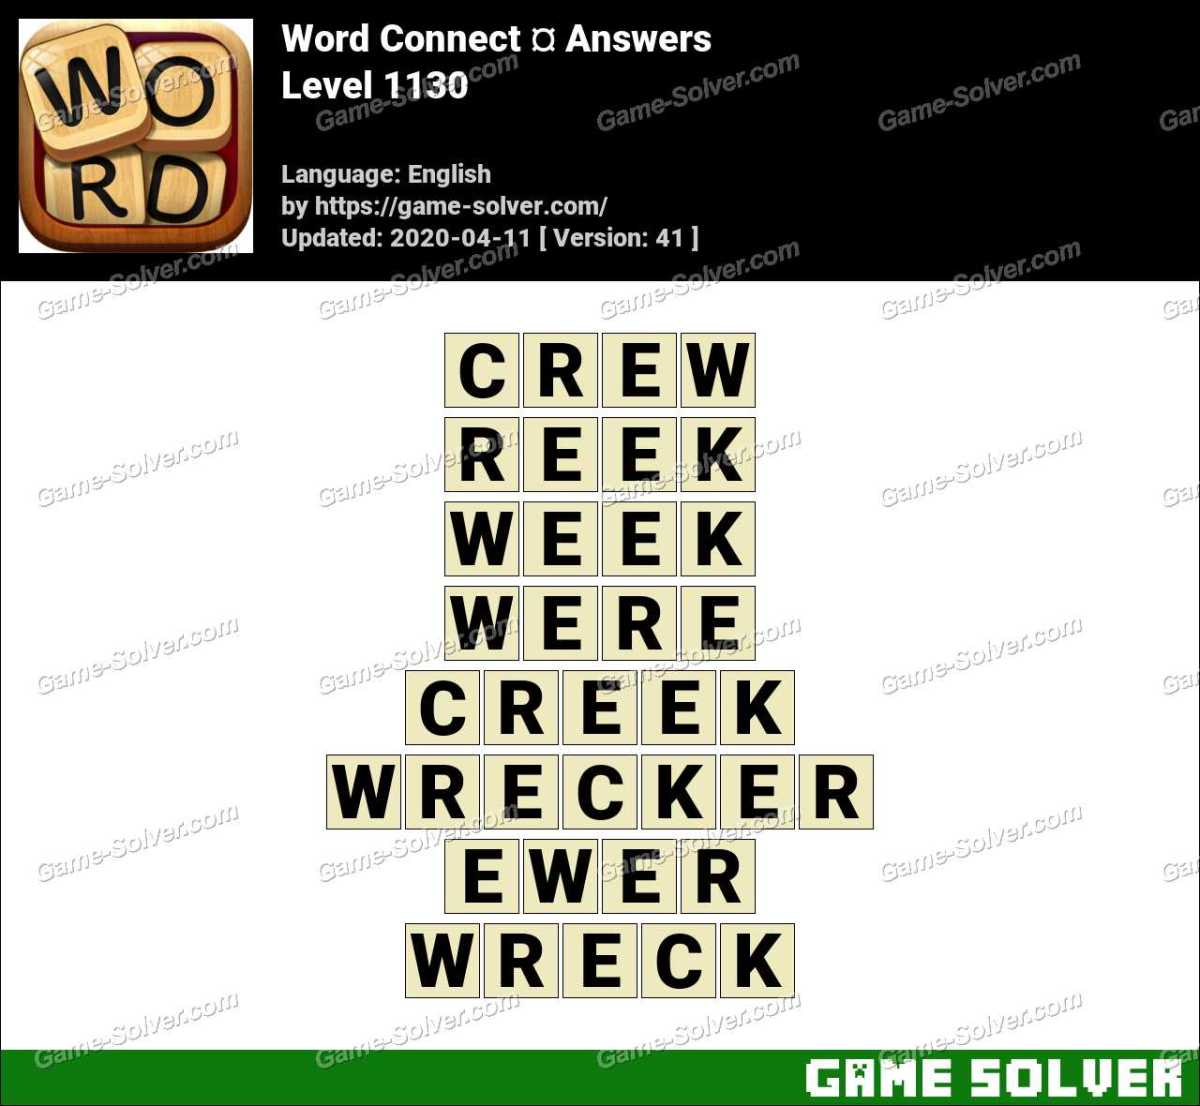 Word Connect Level 1130 Answers